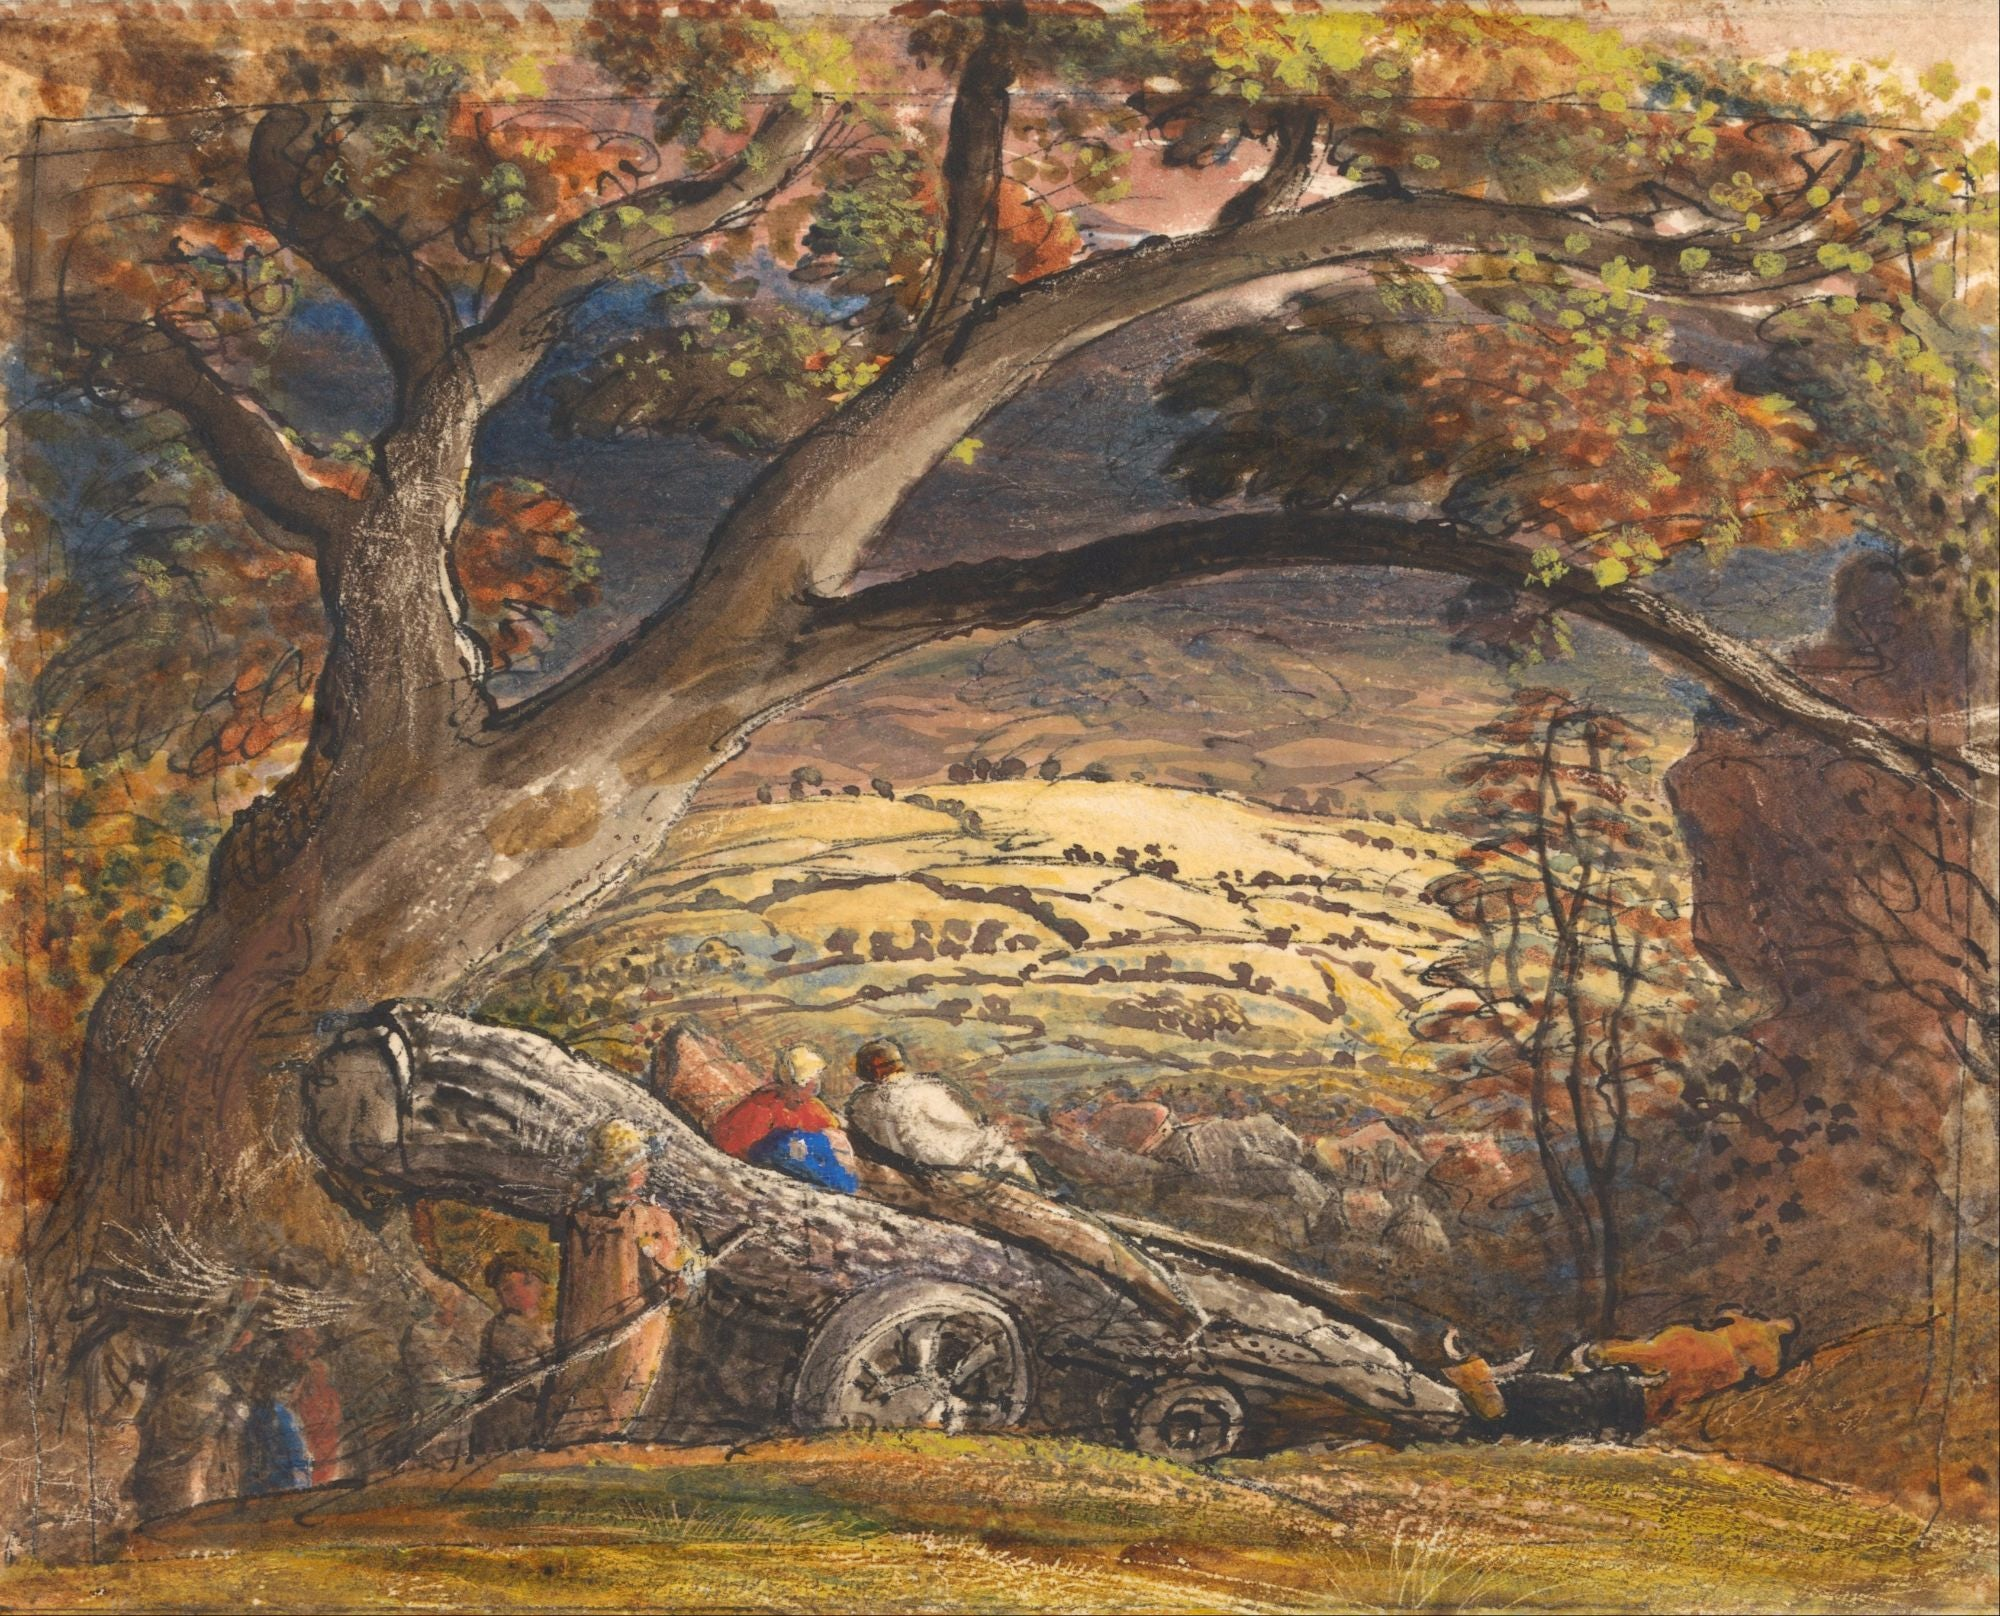 Samuel Palmer | Buy Posters, Frames, Canvas, Digital Art & Large Size Prints Of The Famous Old Master's Artworks